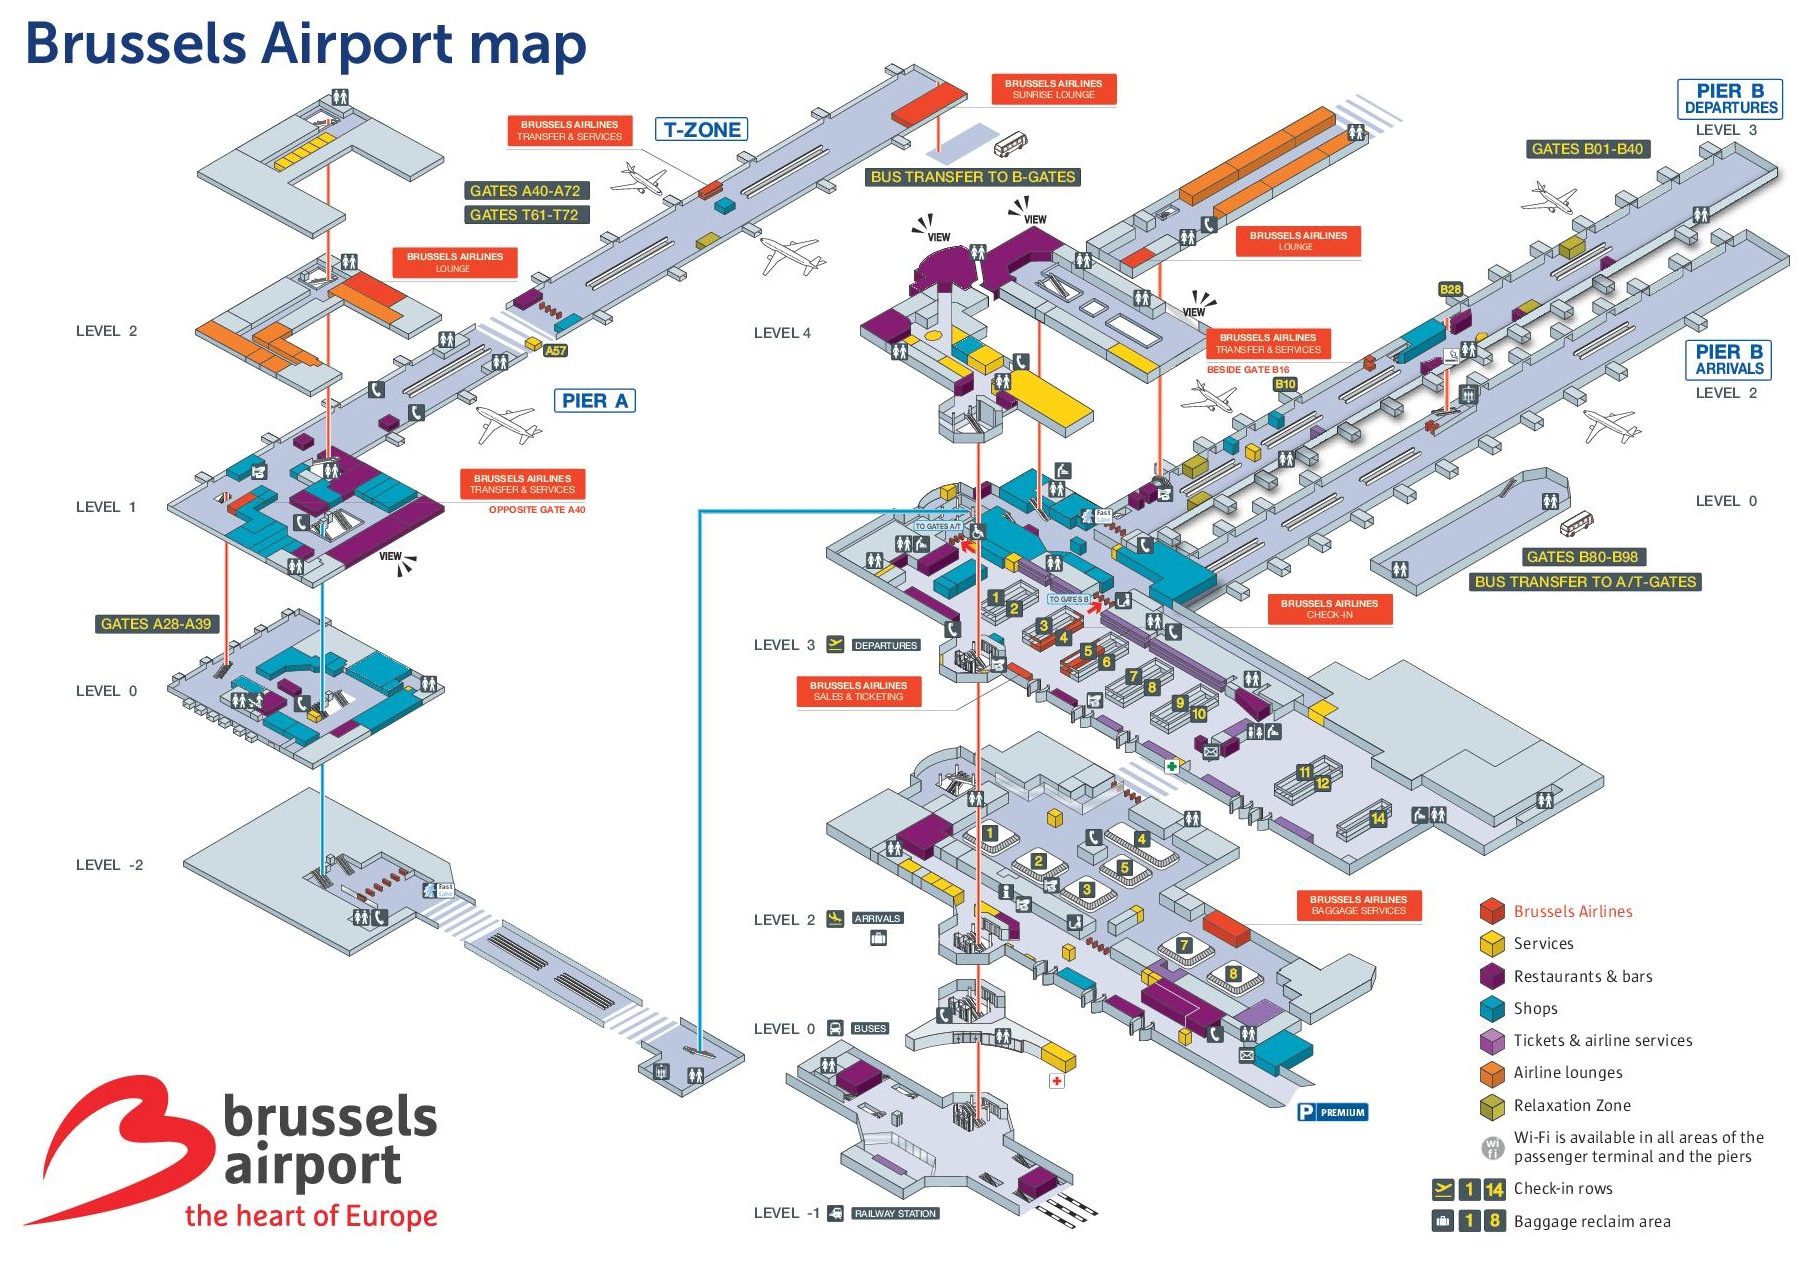 Brussels Airport Map Brussels airport map Brussels Airport Map